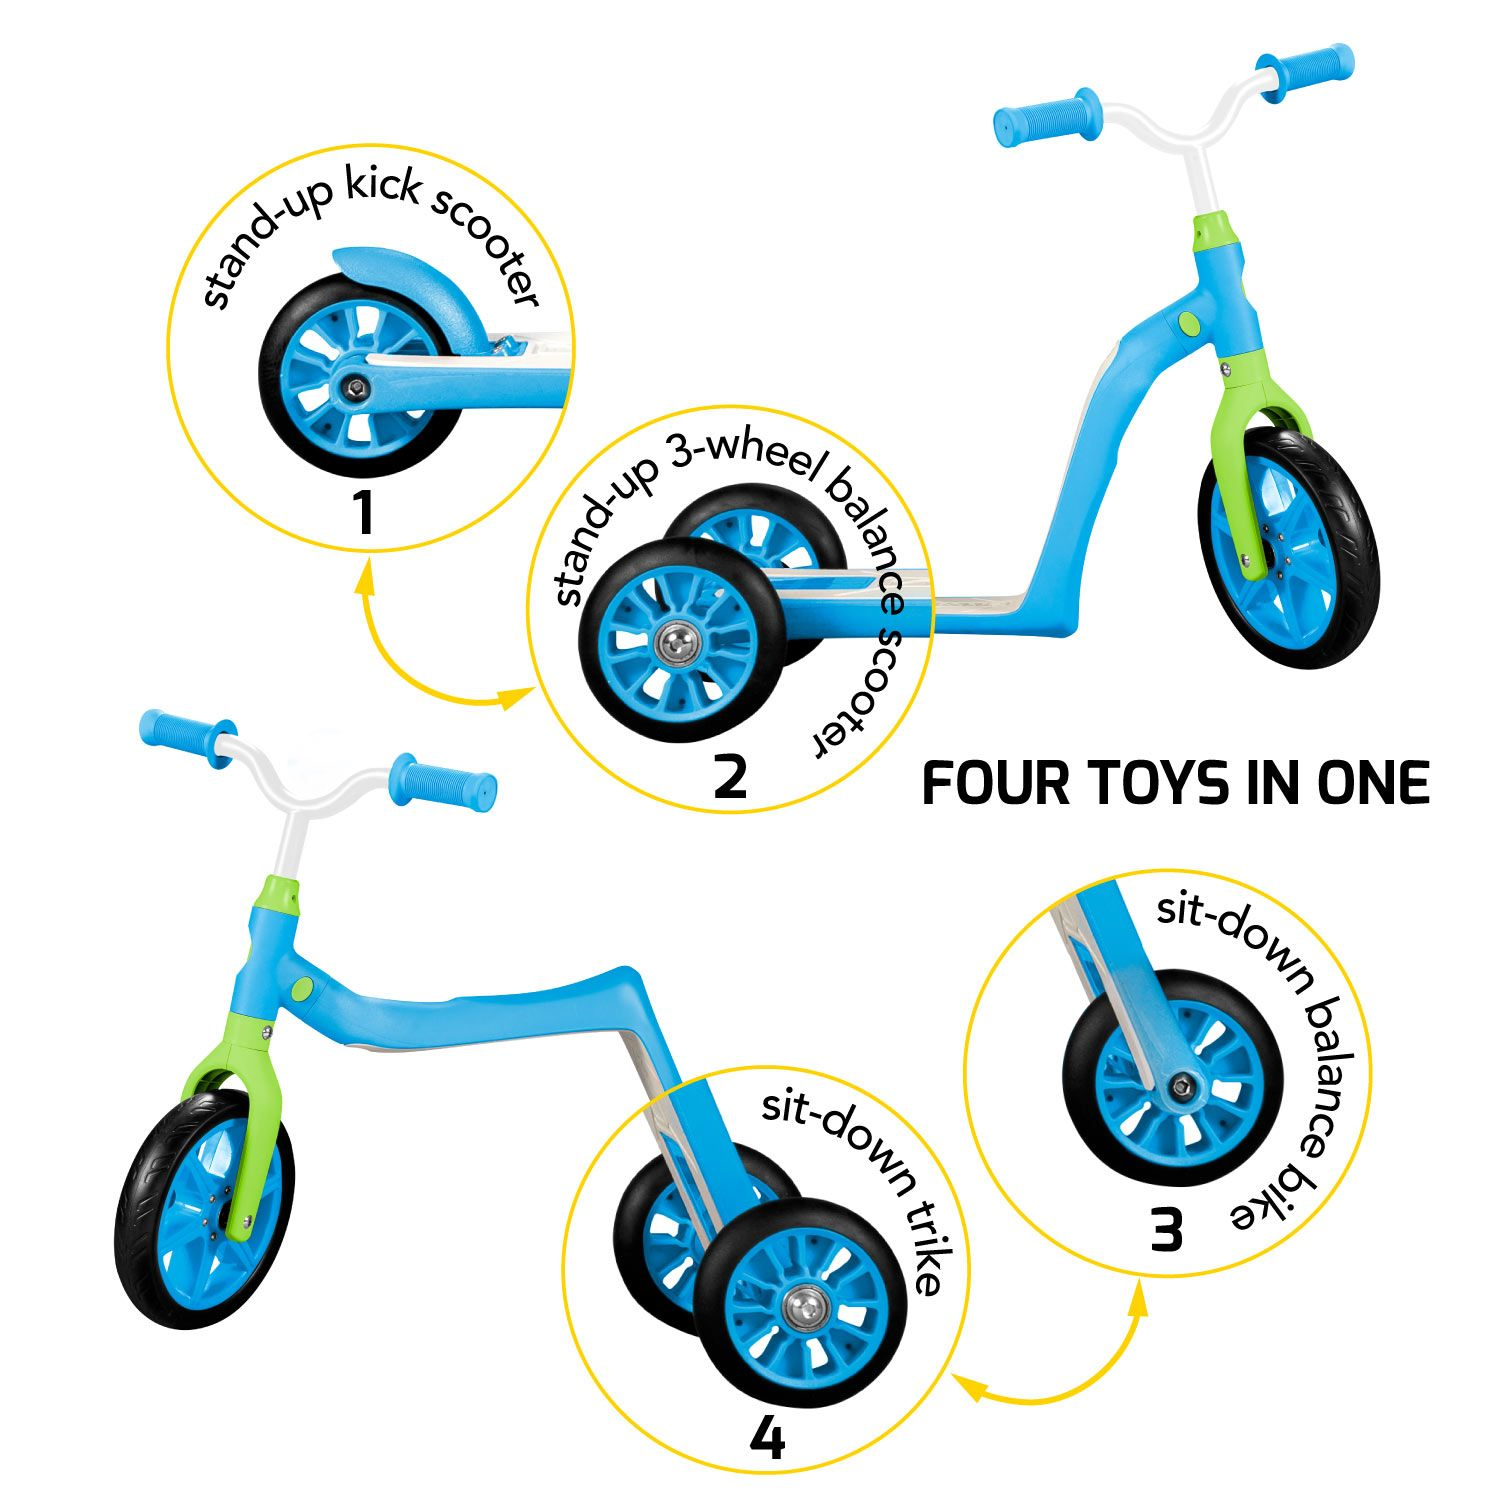 Giveaway From Mommypr Http Www Mommypr Com Swagtron 4 In 1 Toddler Scooter And Balance Bike Giveaway Toddler Scooters Balance Bike Bike